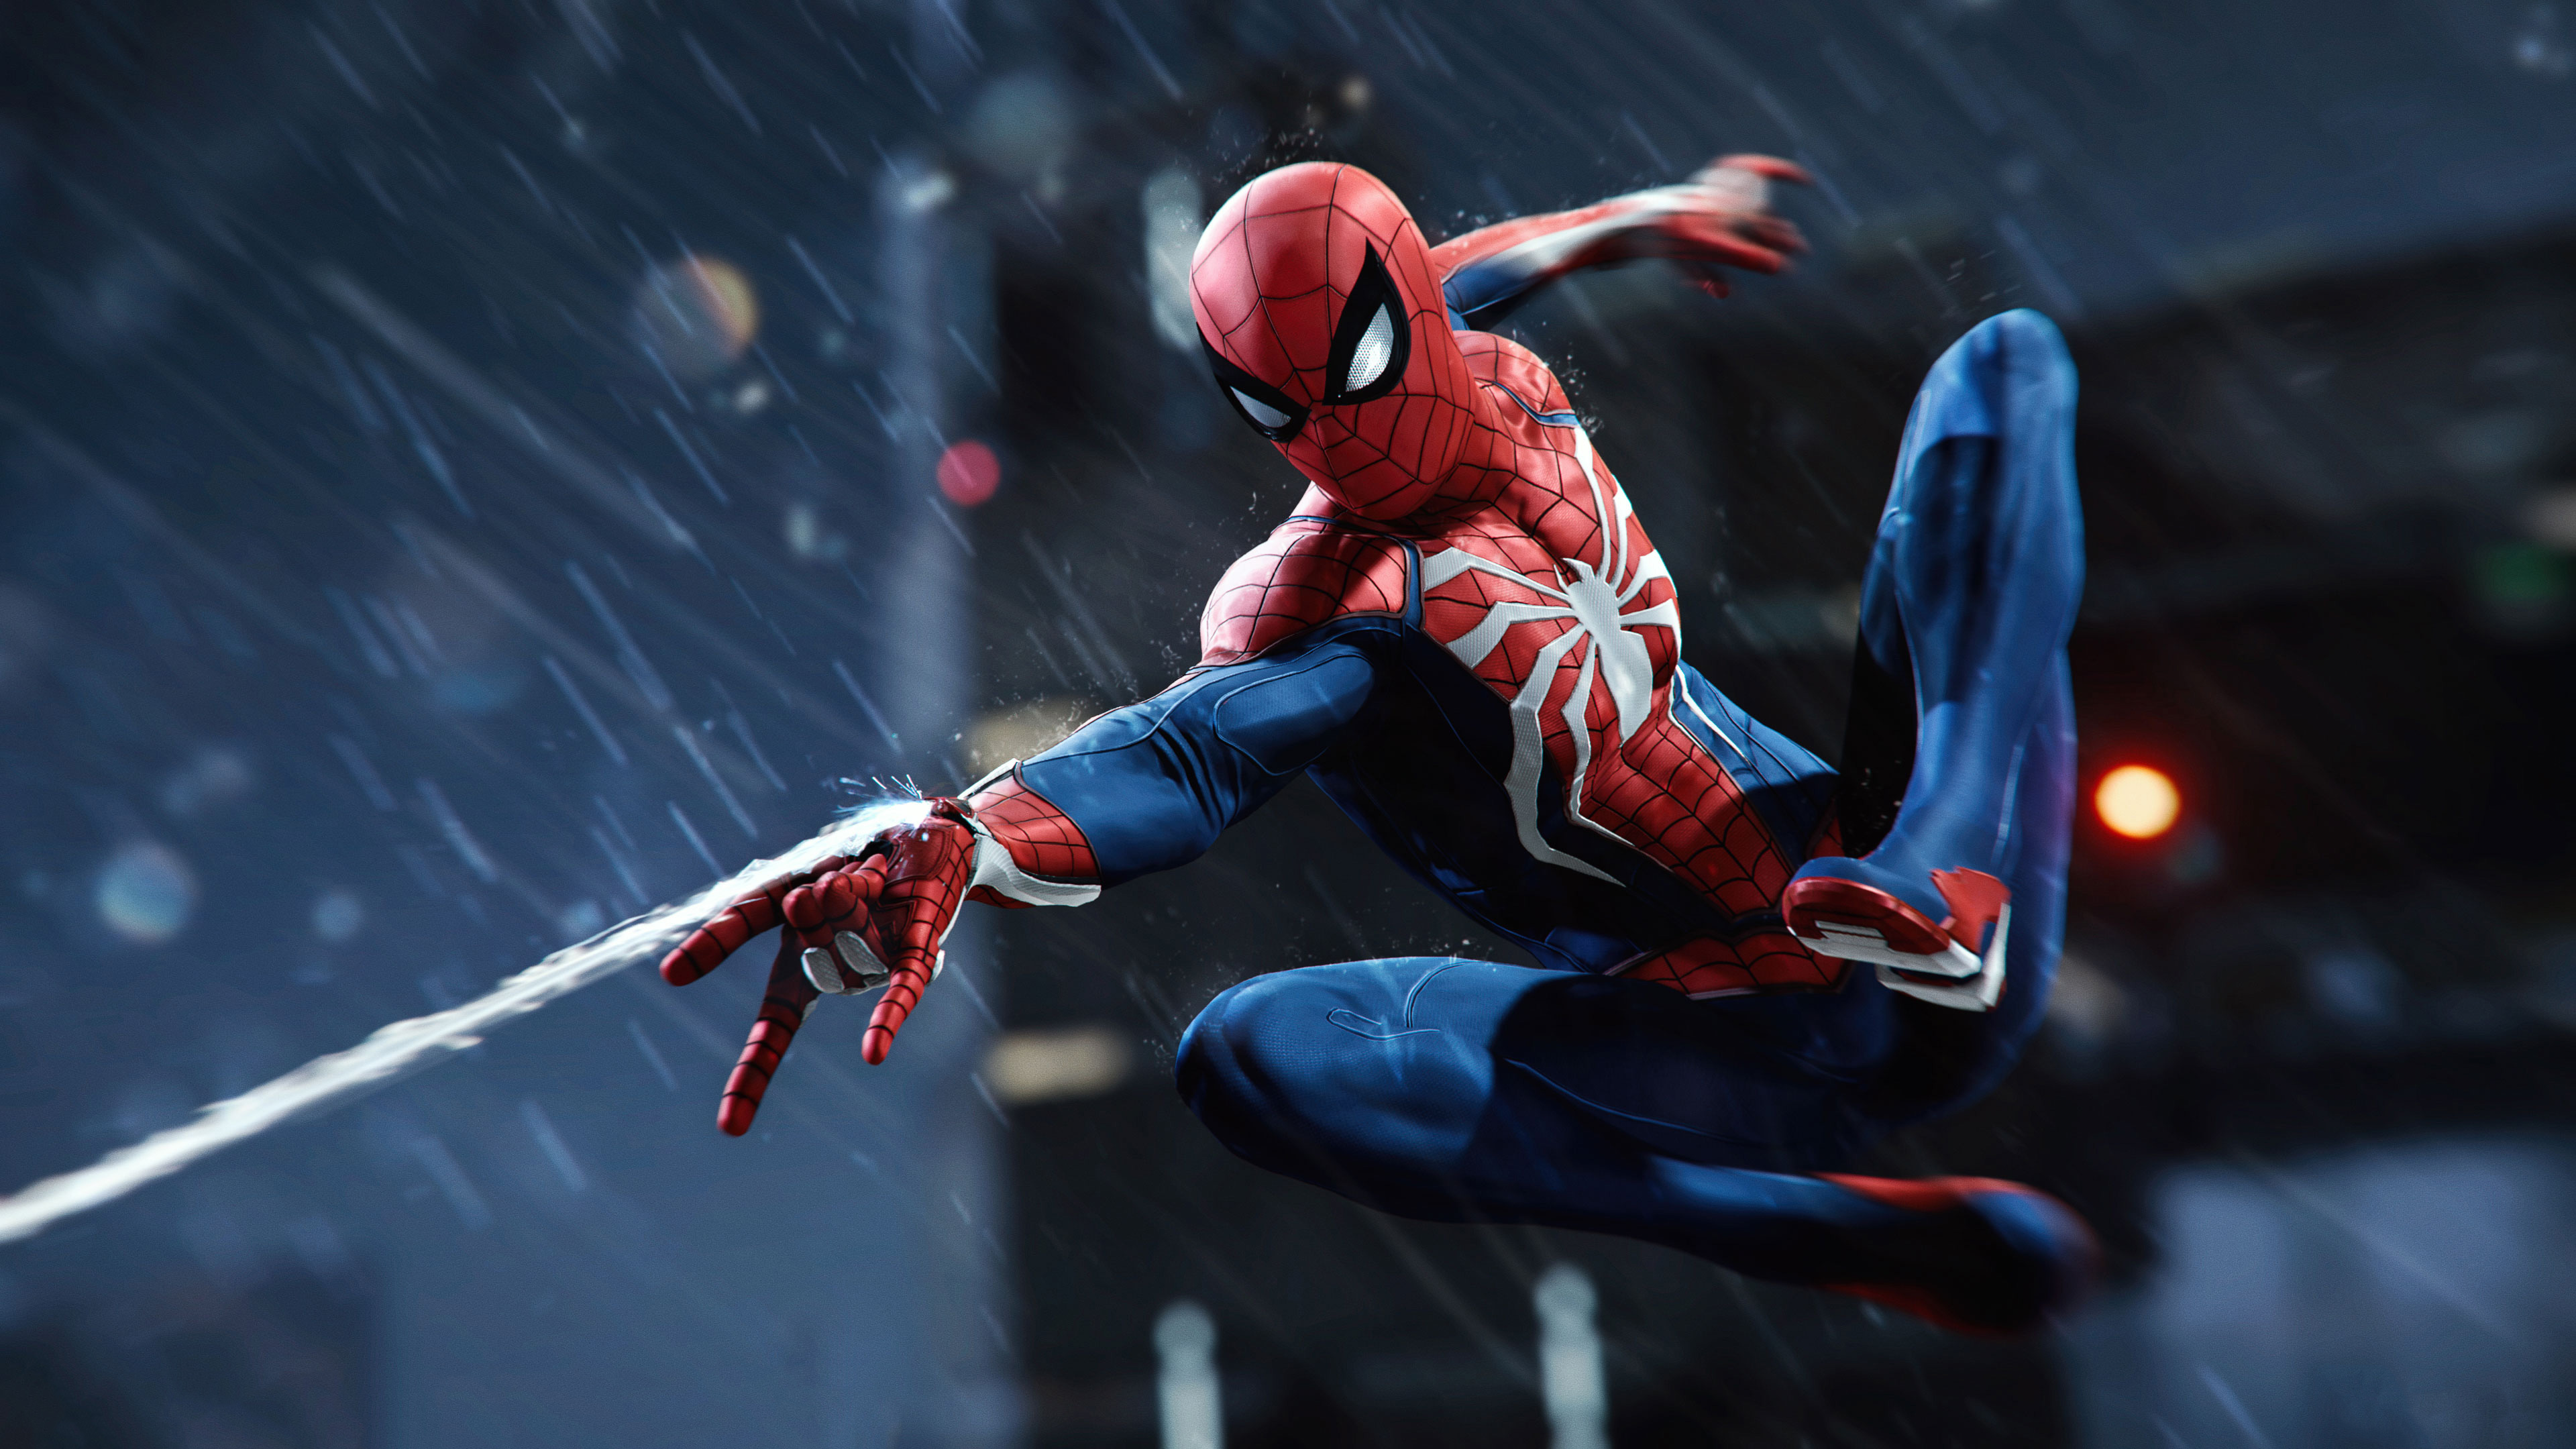 Spiderman PS4 2018 E3, HD Games, 4k Wallpapers, Images ...